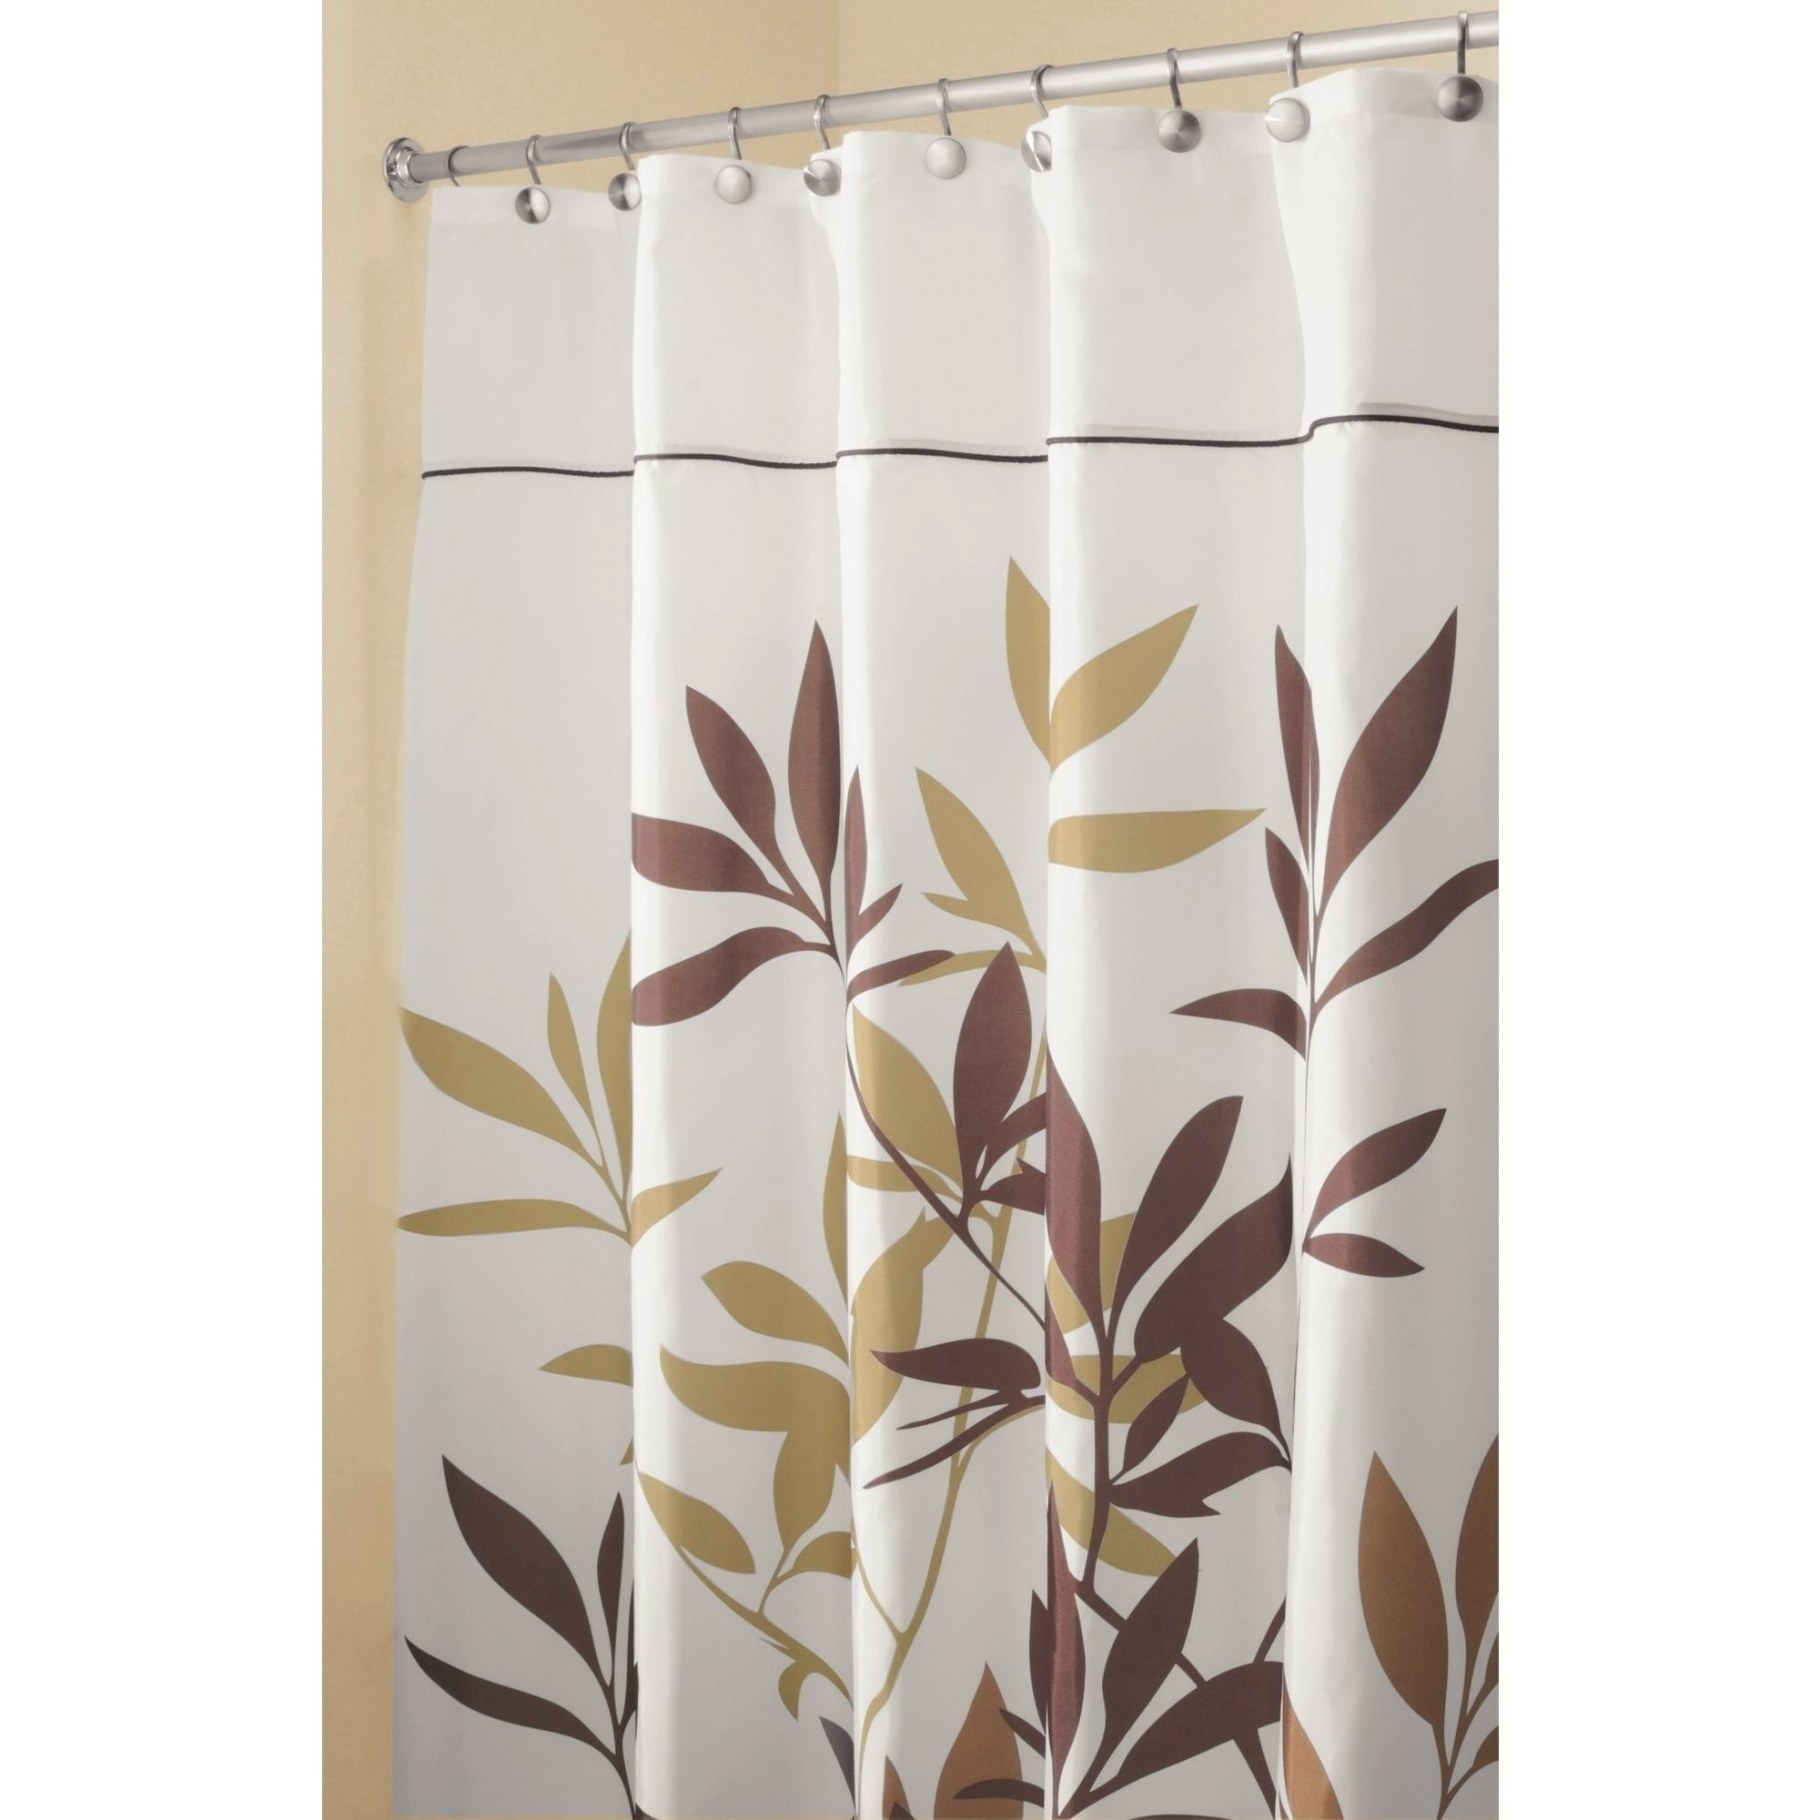 "Interdesign Leaves Fabric Shower Curtain, Long 72"" X 84 with 84 Inch Shower Curtain"